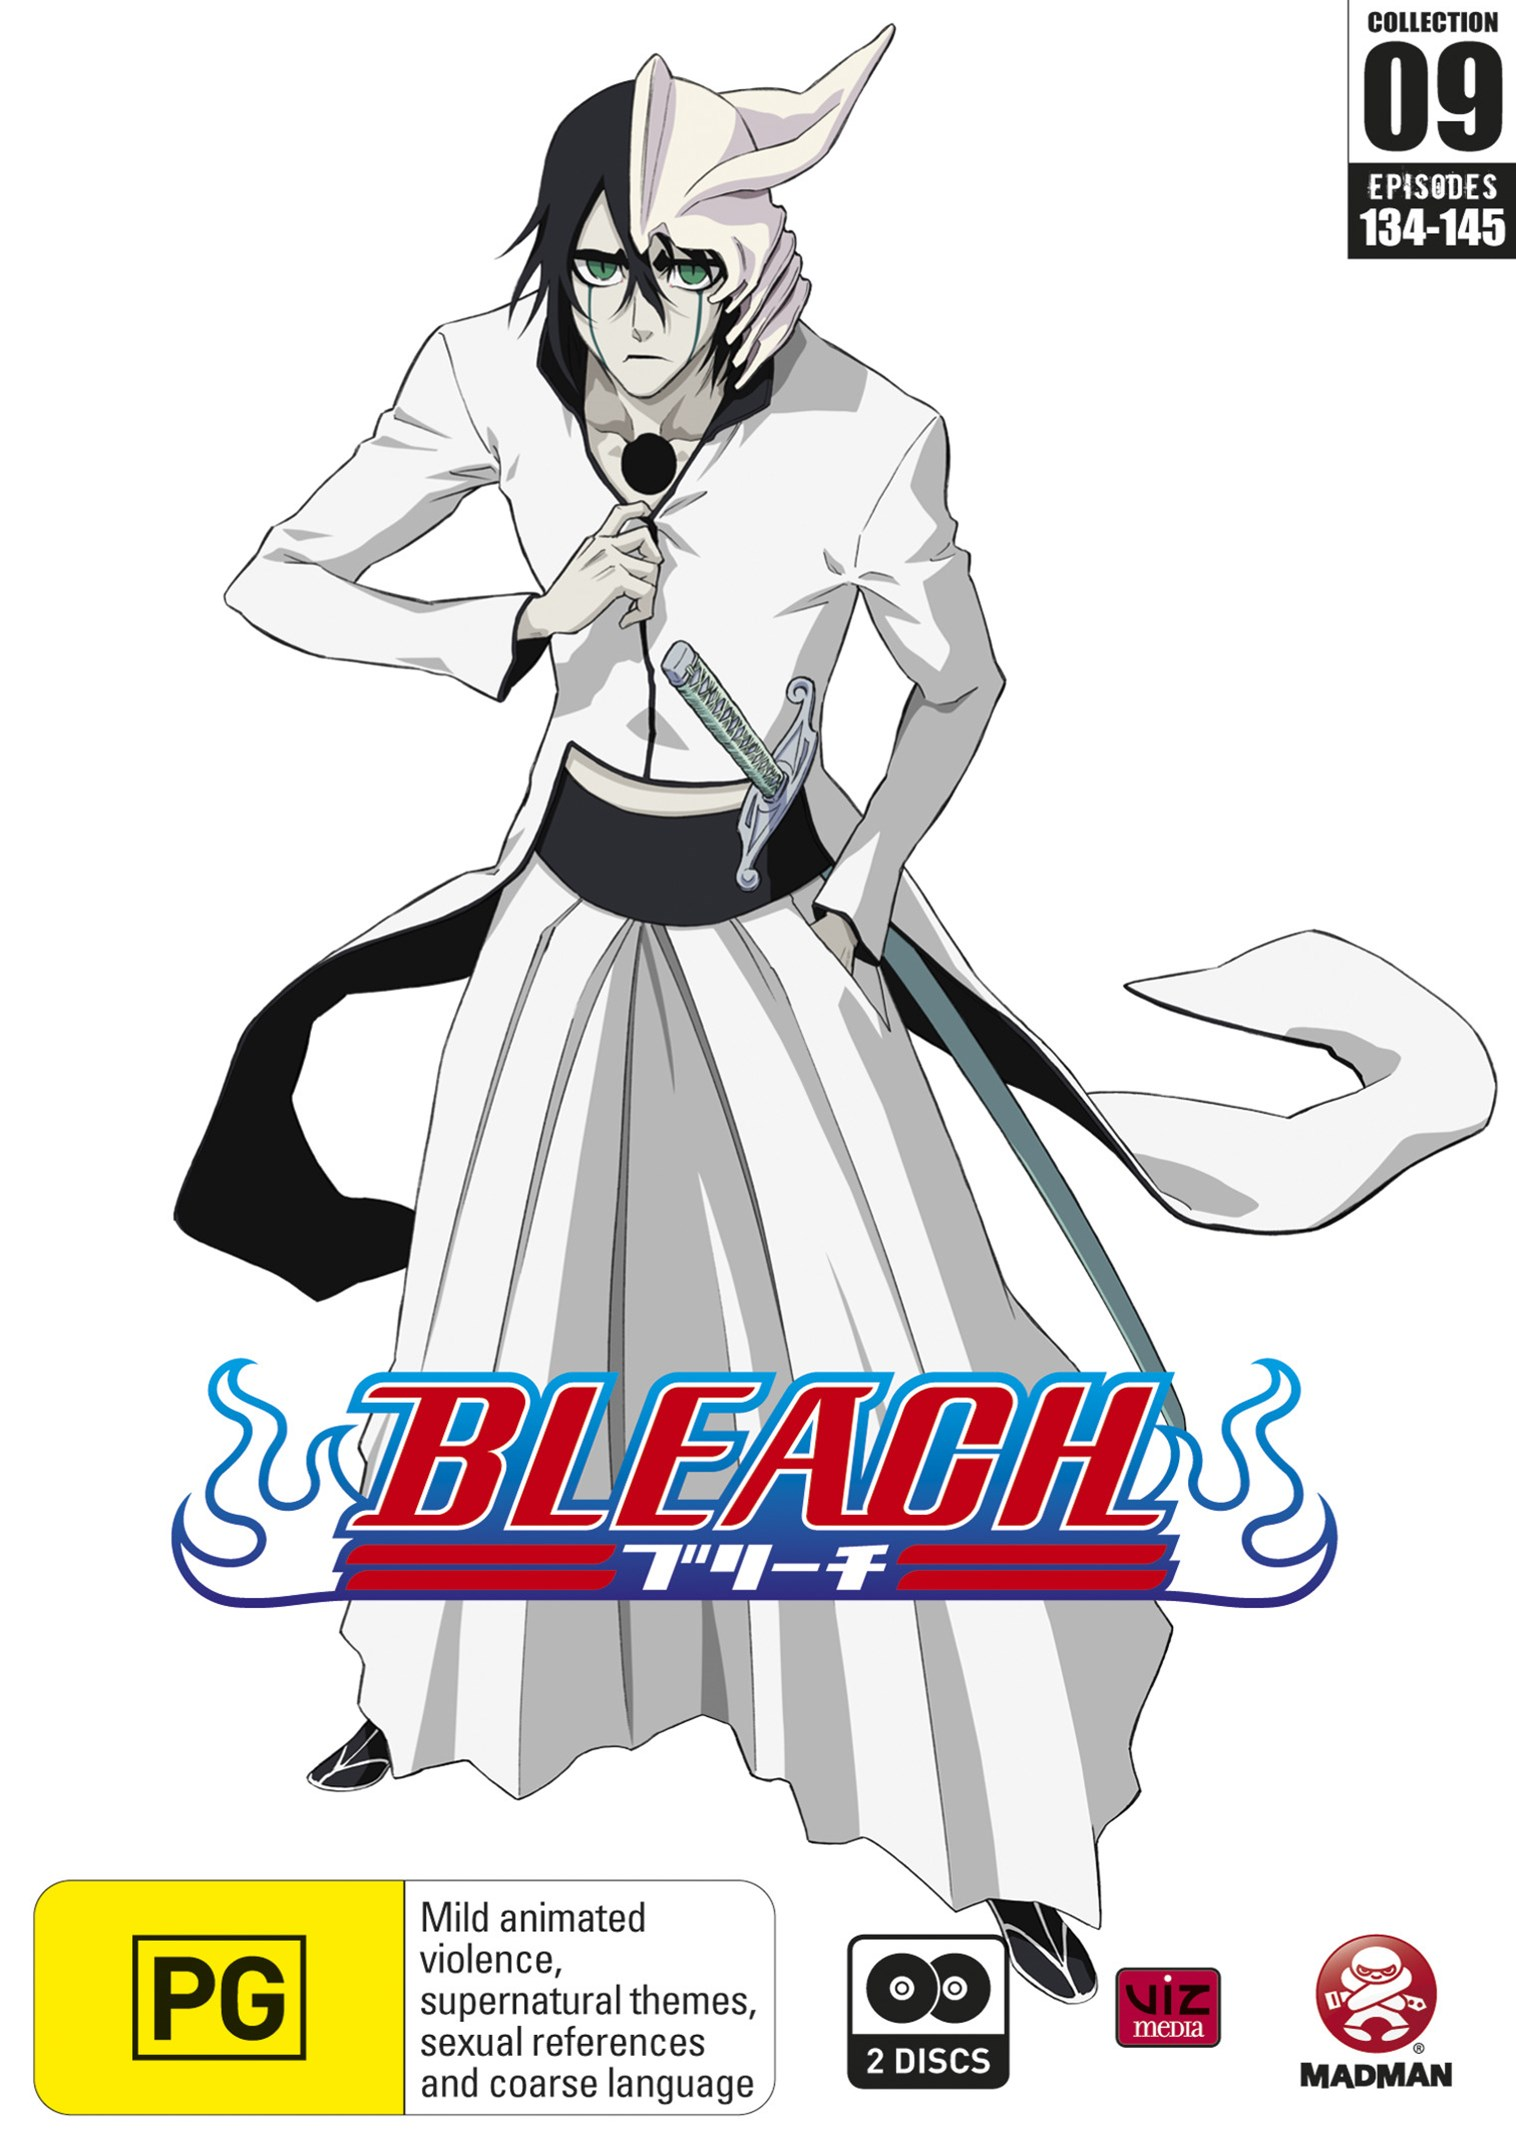 Bleach: Collection 09 (Eps 134-145)